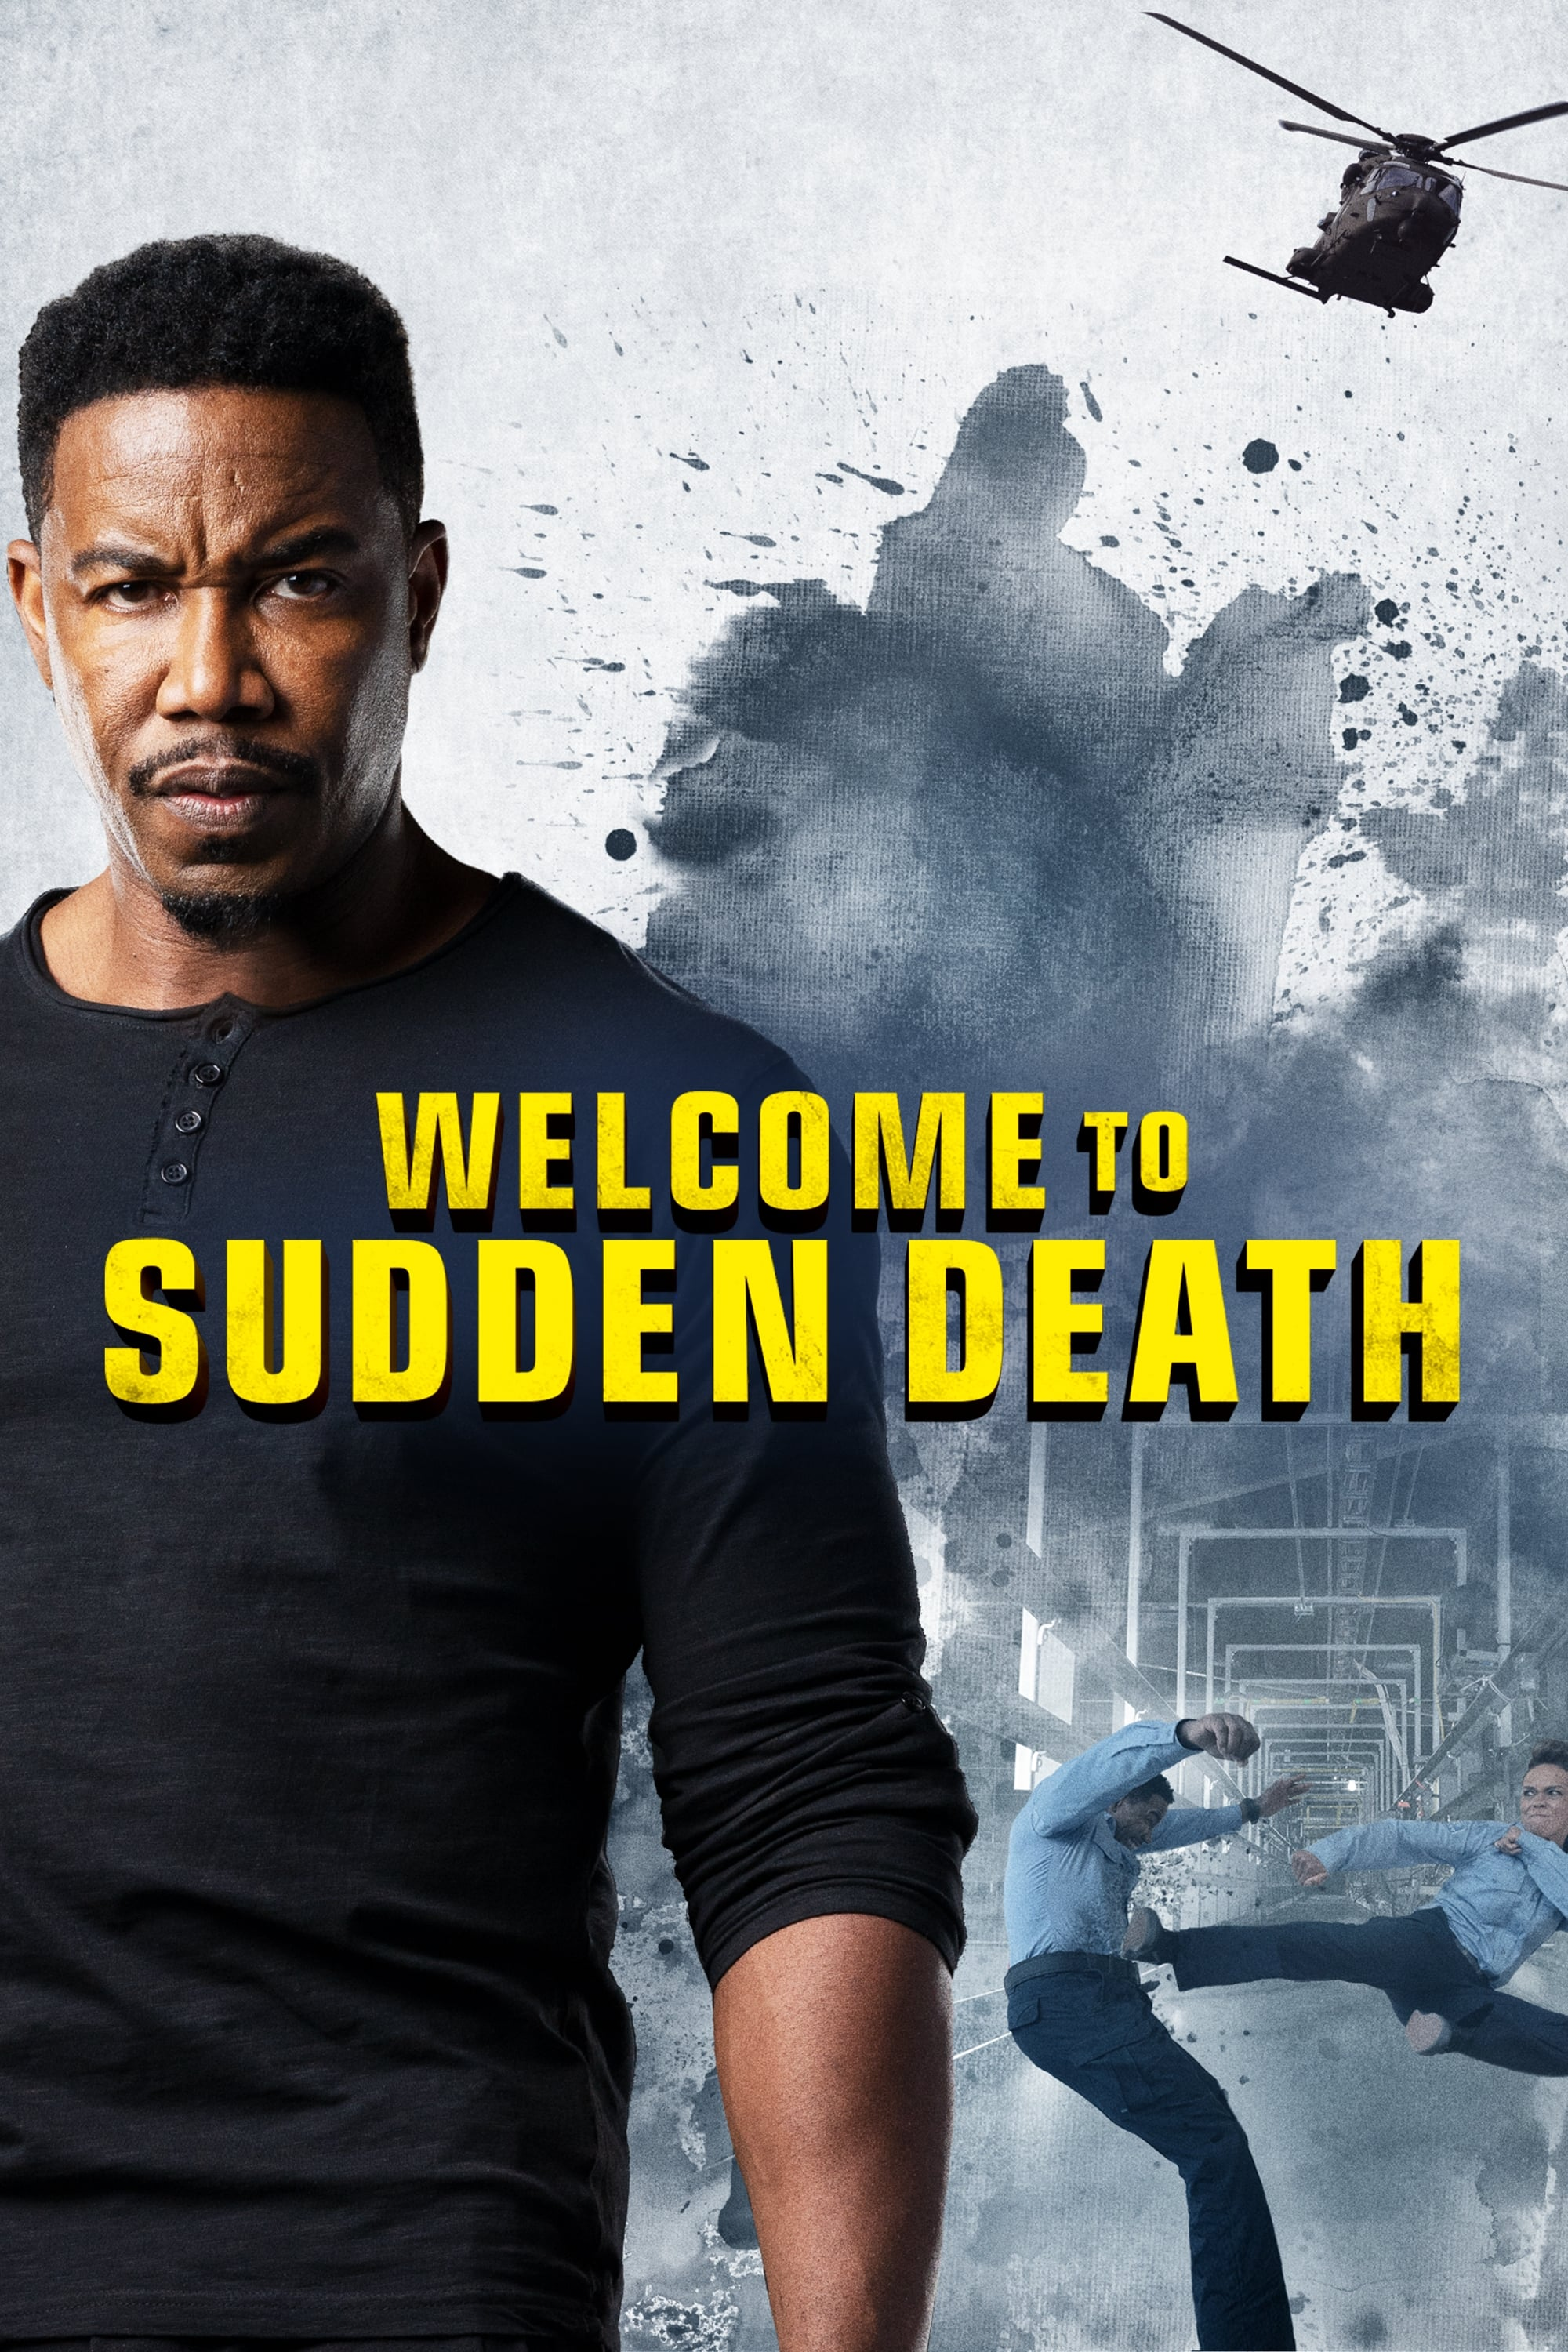 voir film Welcome to Sudden Death streaming